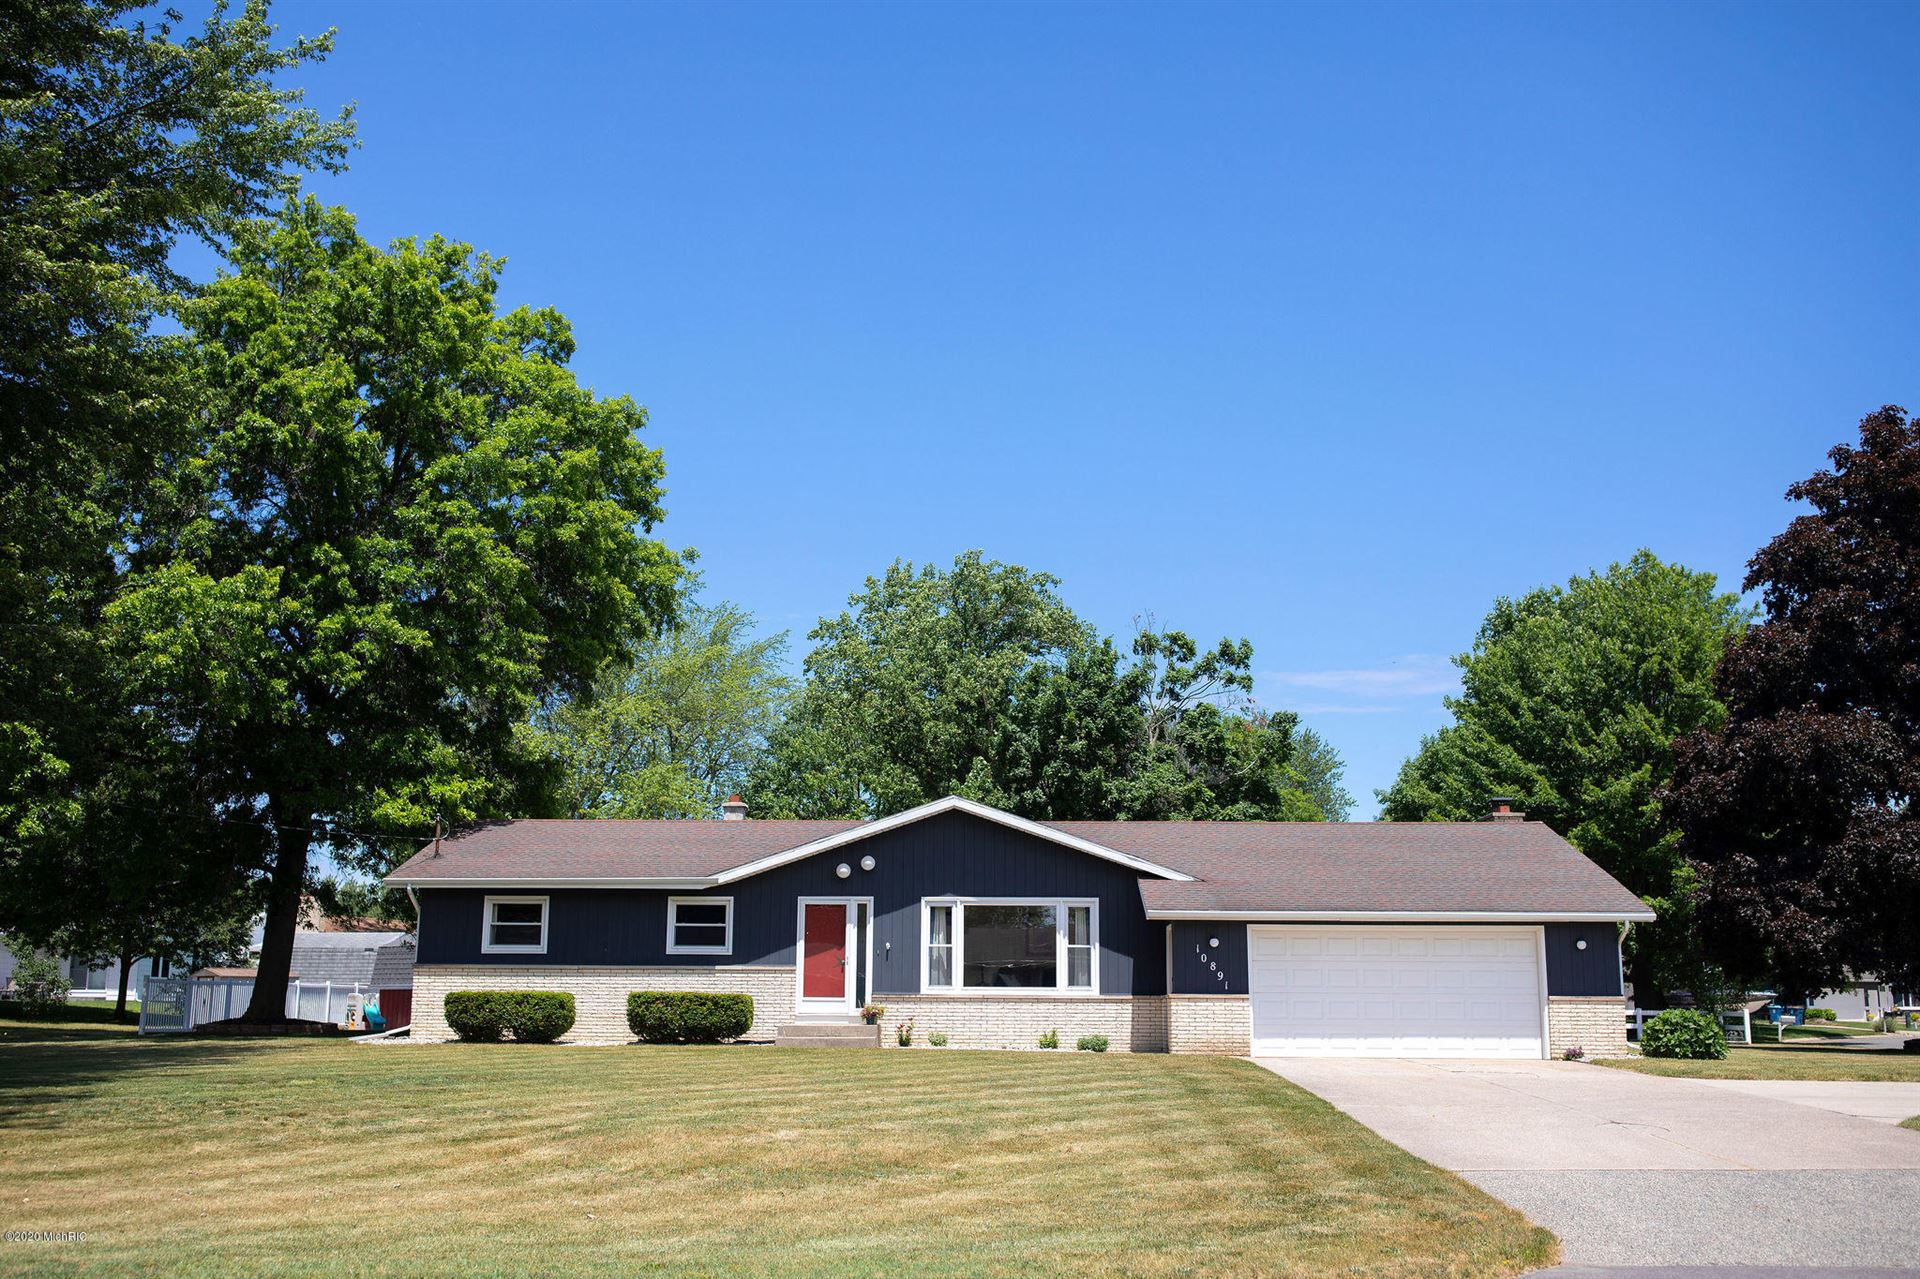 10891 James Street, Zeeland, MI 49464 - MLS#: 20024558